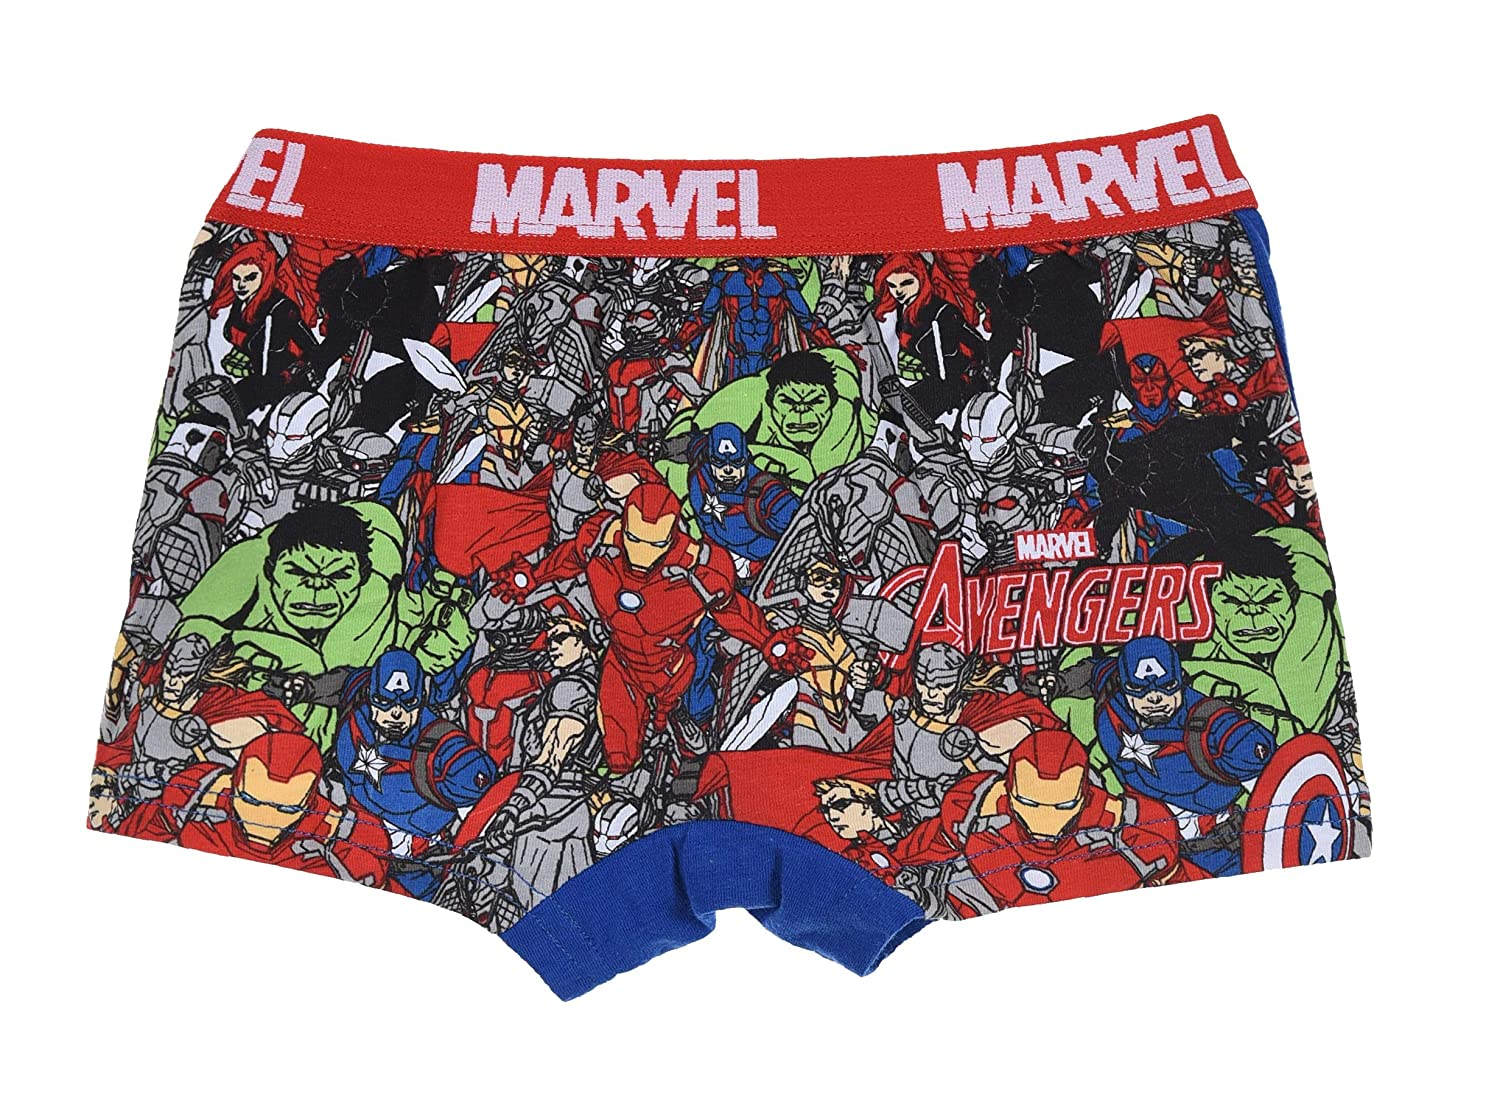 Avengers Toy Story Boys Paw Patrol Boxer Shorts 2 Pack Set Ages 2-8